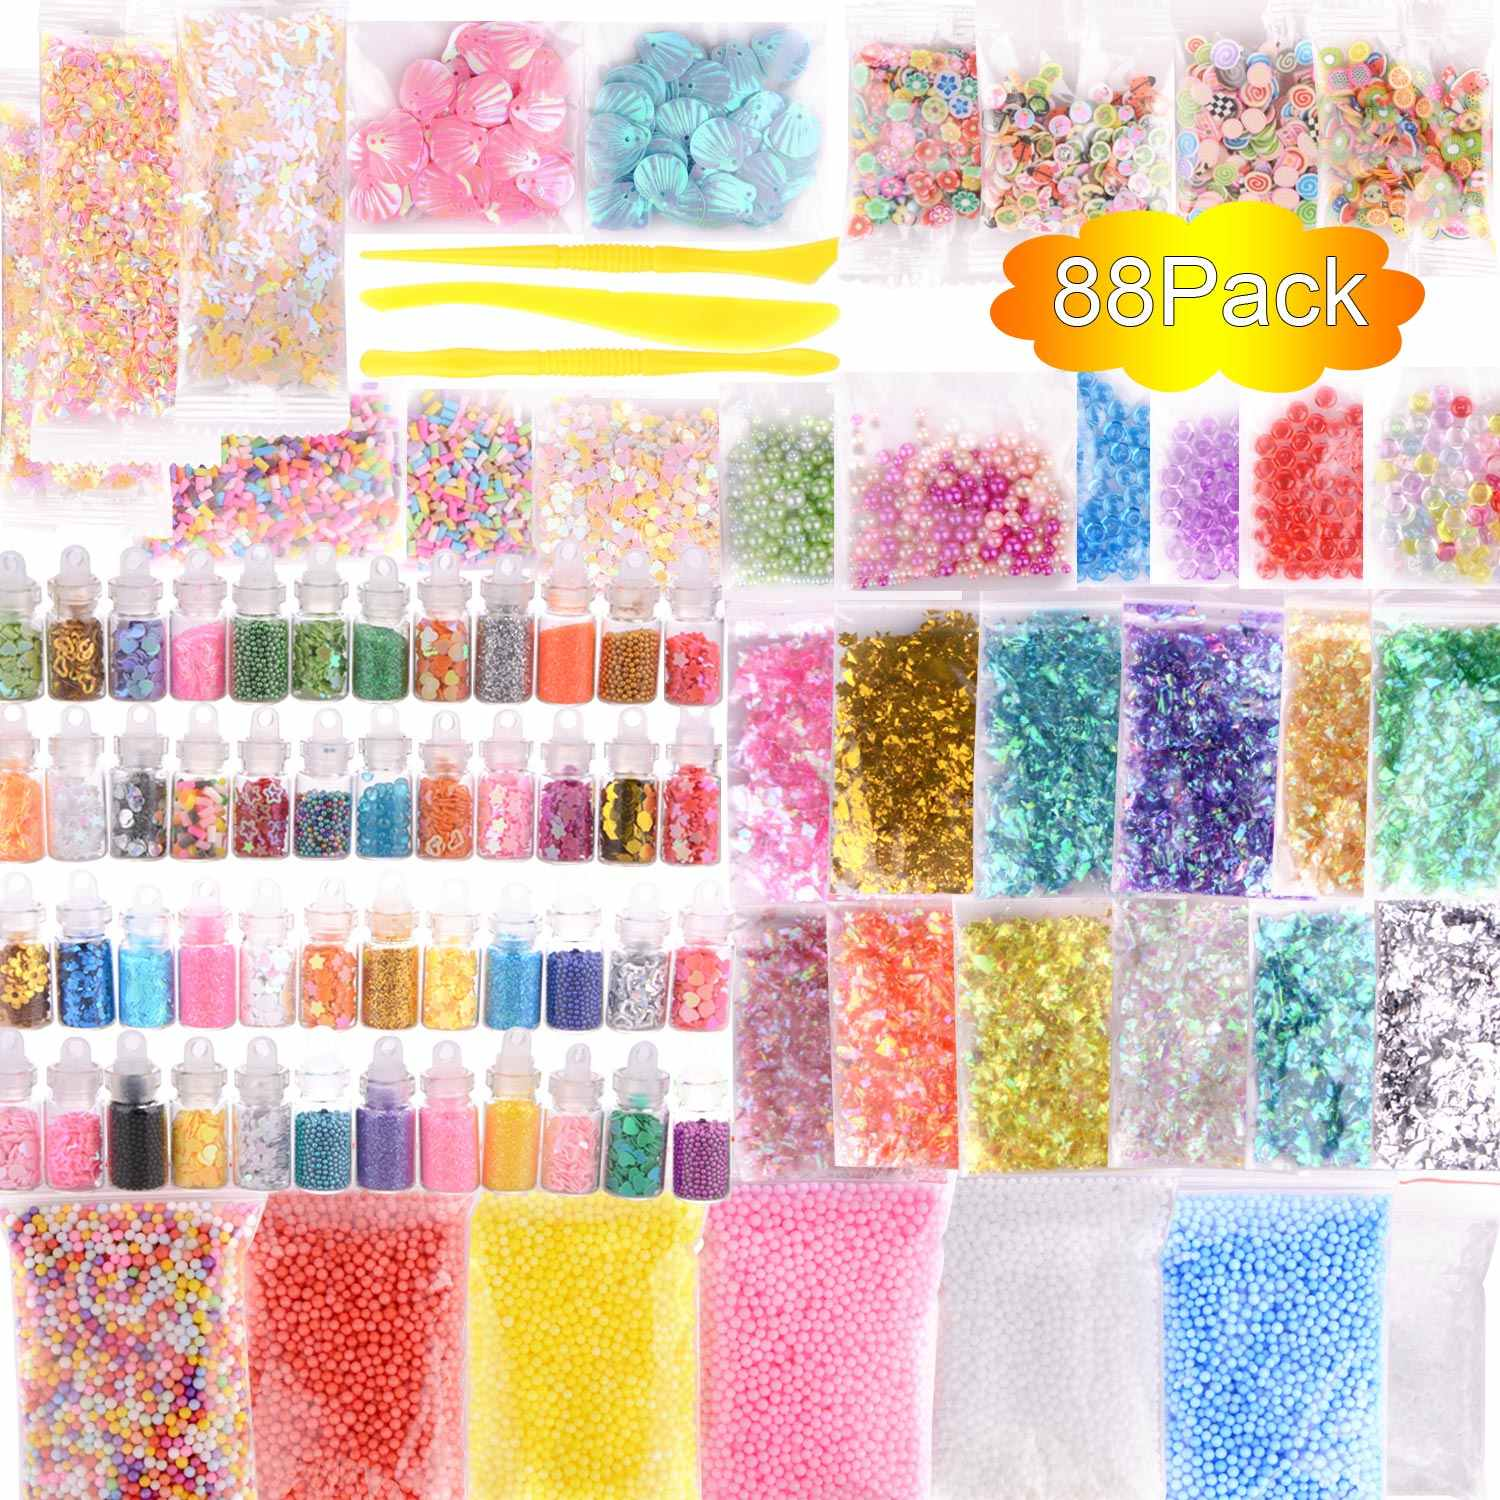 88 Pack Slime Making Kit Styrofoam Foam Balls Beads Charms Glitter Jars Containers Slime for DIY Craft Homemade Party Supply